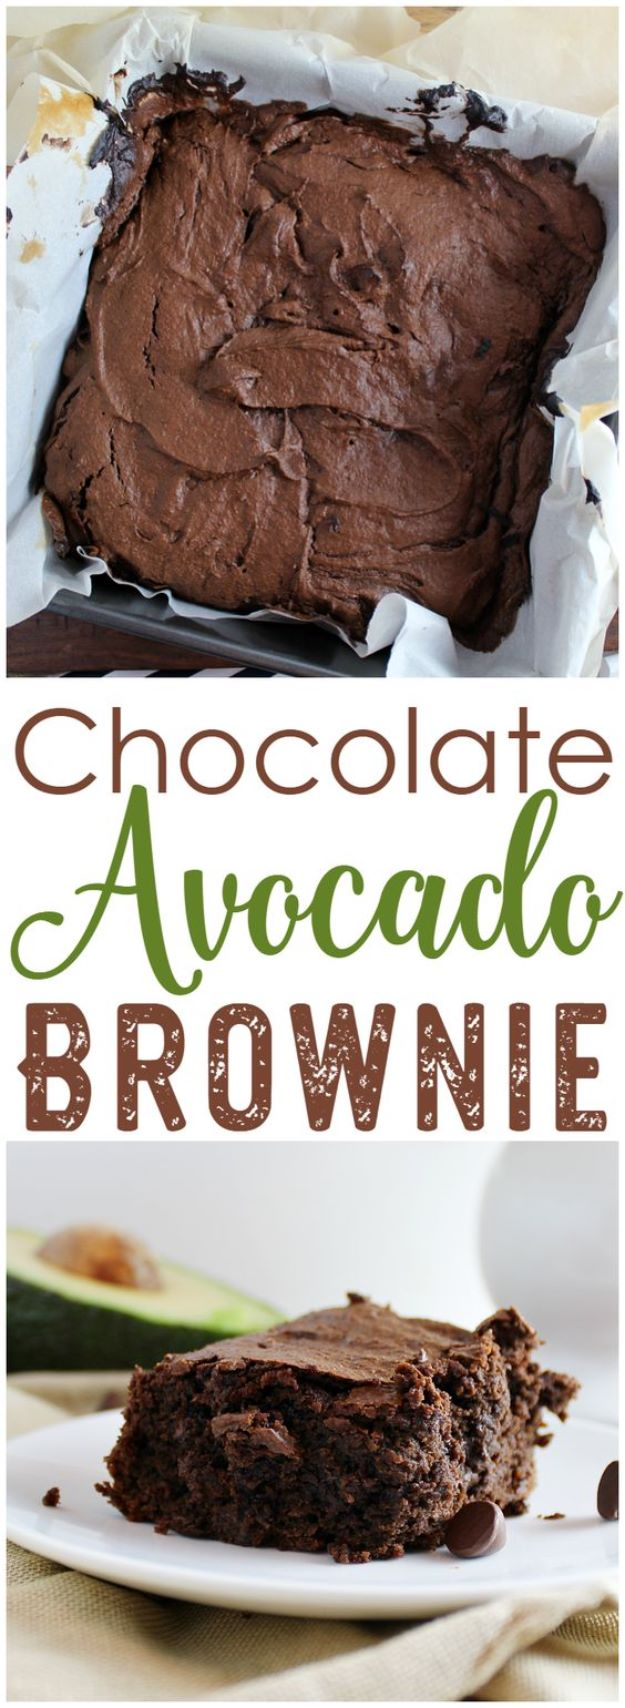 Avocado Recipes - Chocolate Avocado Brownies - Quick Avocado Toast, Eggs, Keto Guacamole, Dips, Salads, Healthy Lunches, Breakfast, Dessert and Dinners - Party Foods, Soups, Low Carb Salad Dressings and Smoothie http://diyjoy.com/avocado-recipes